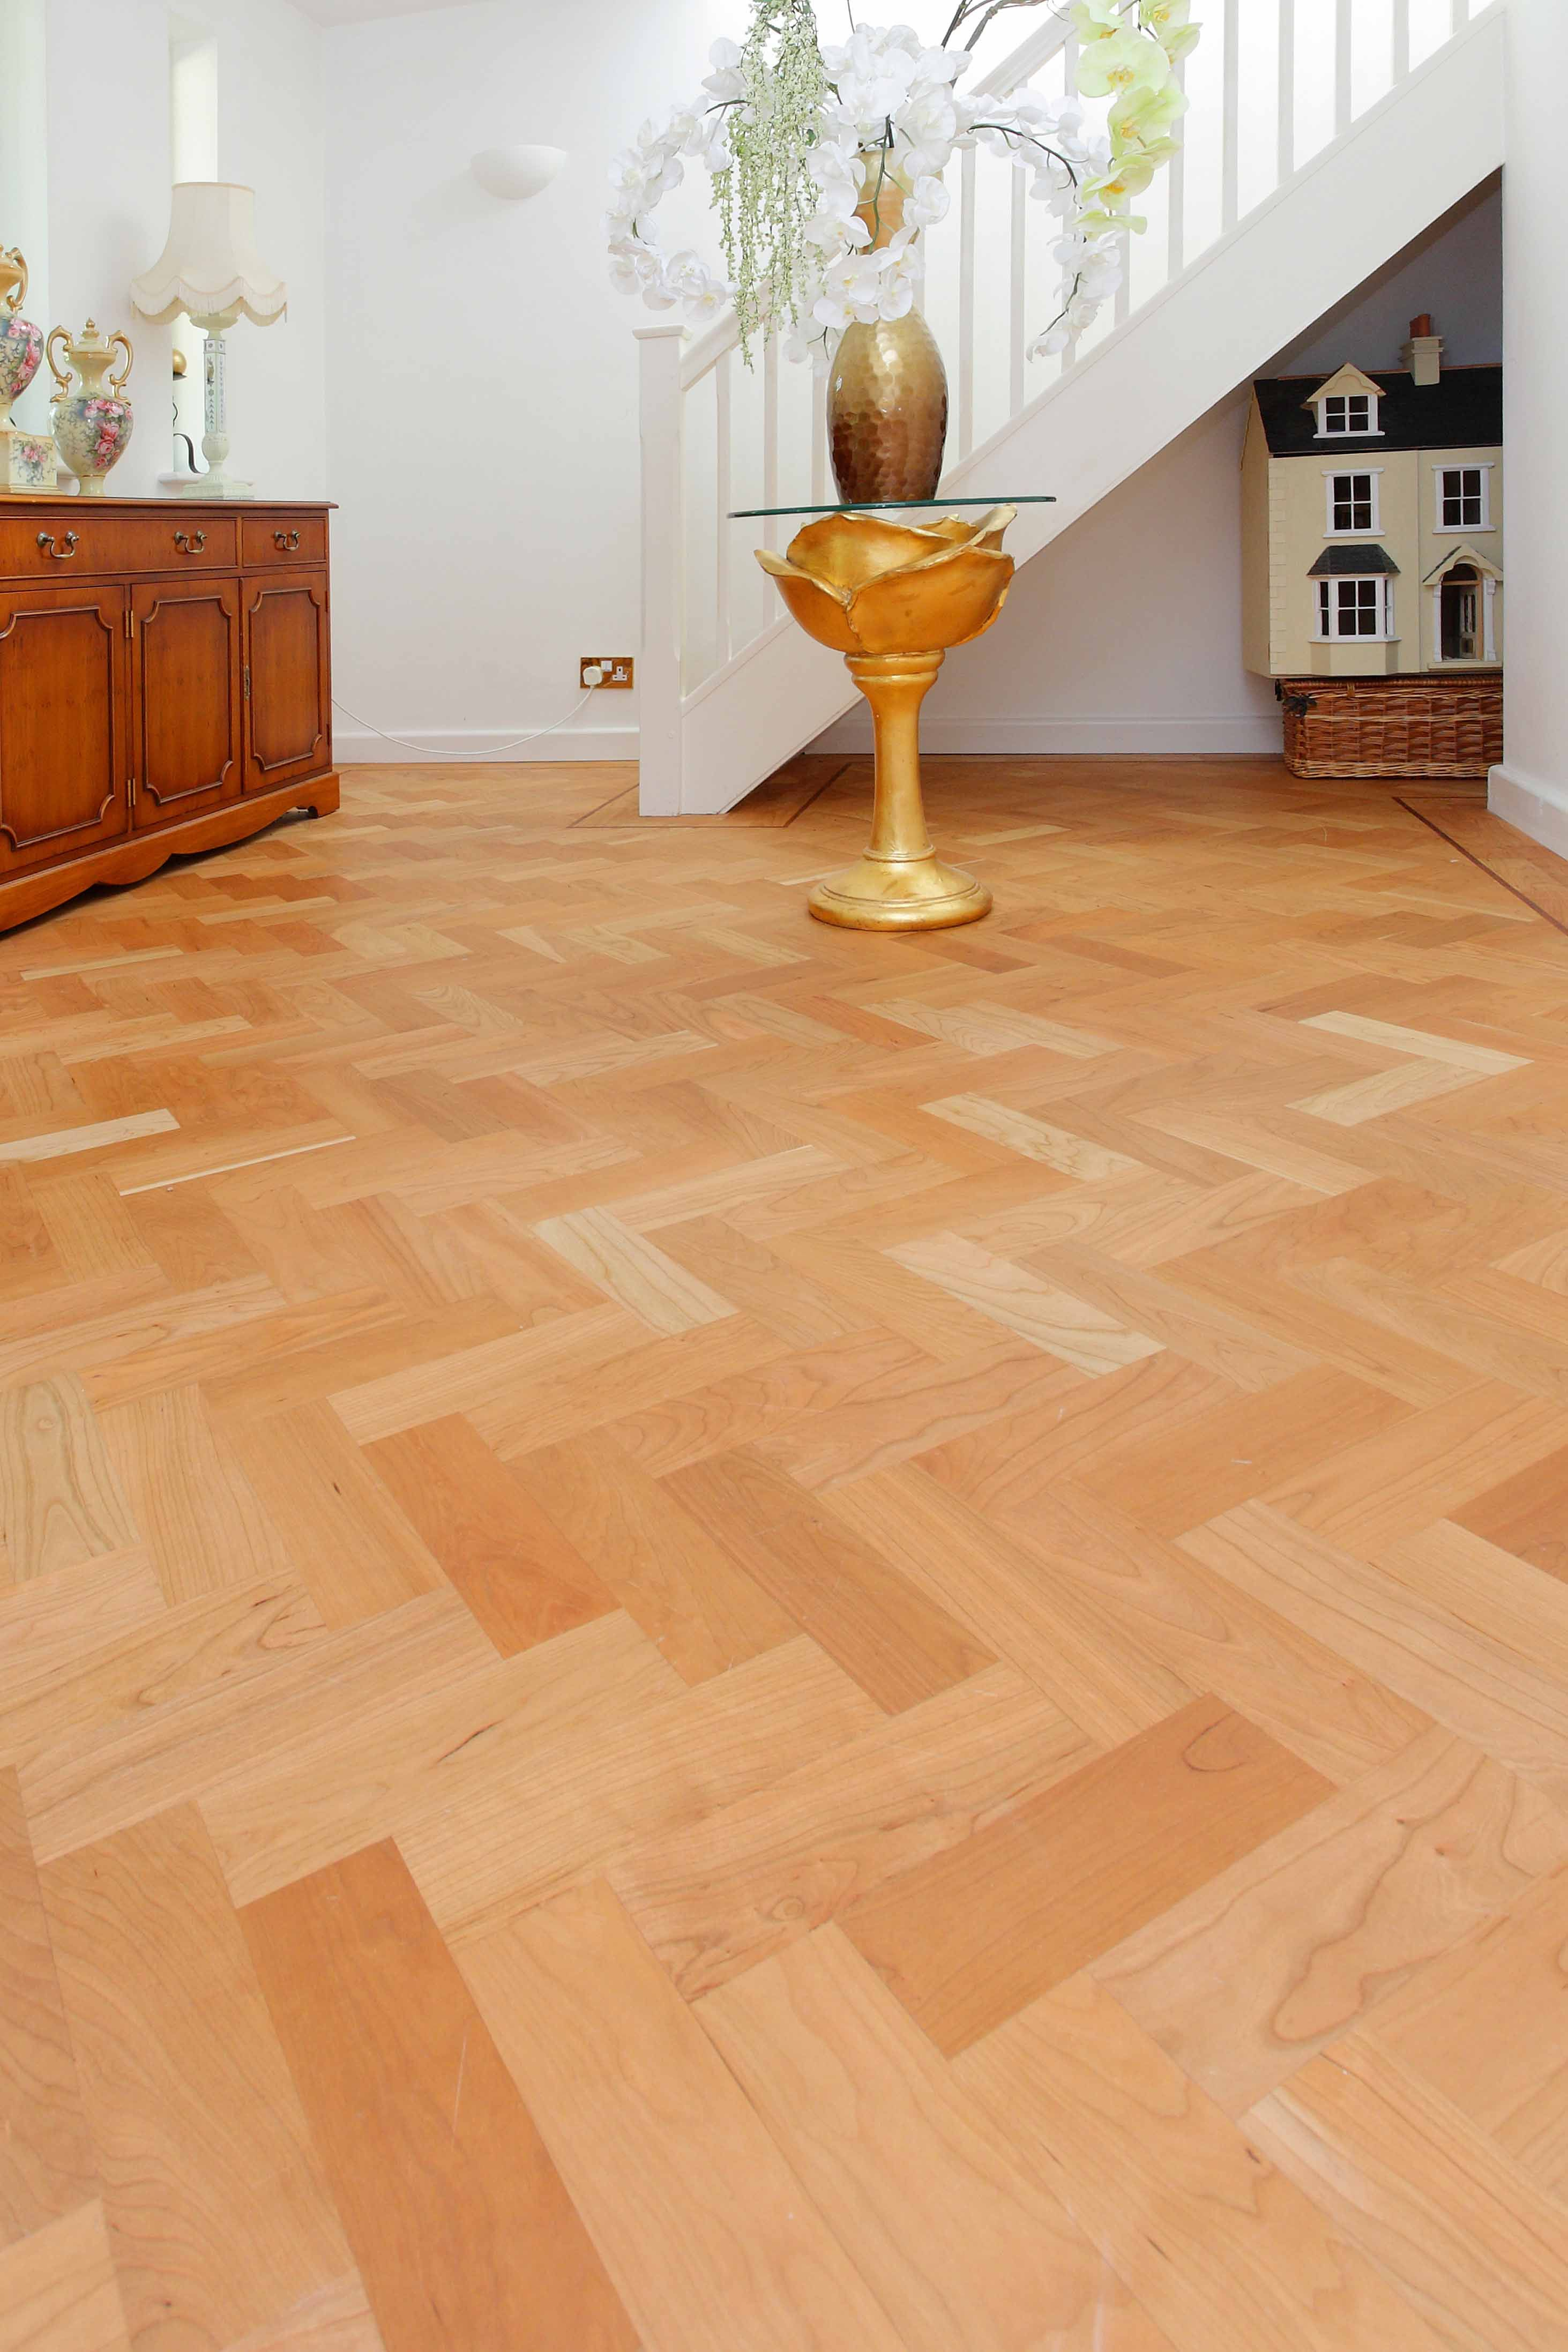 Solid Cherry Parquet Herringbone wood flooring fitted with